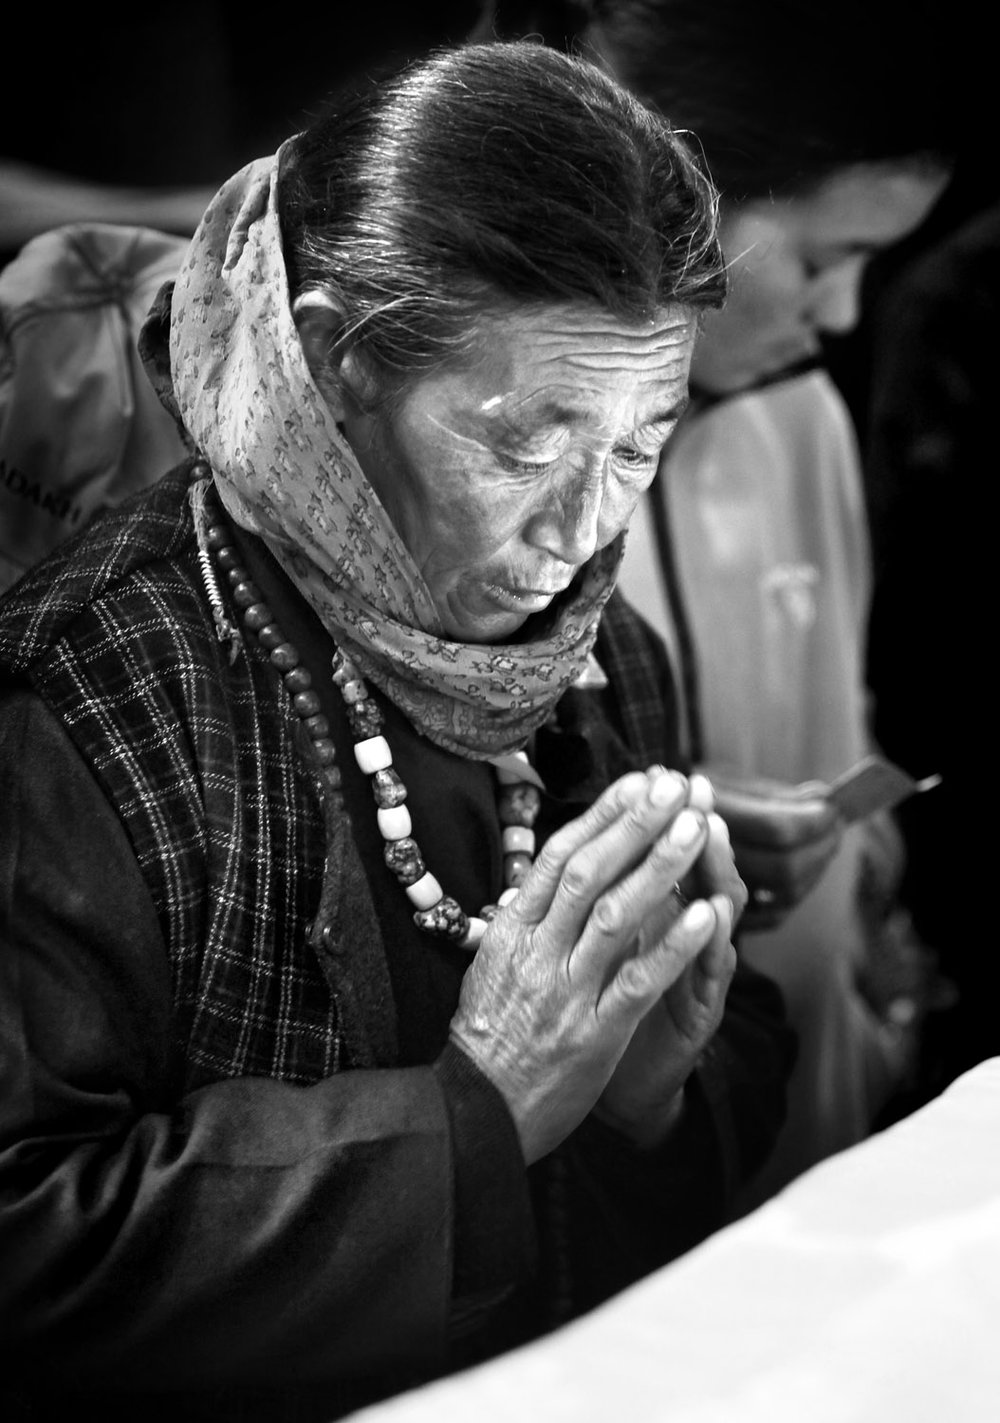 Ladakhi Man in Prayer.jpg